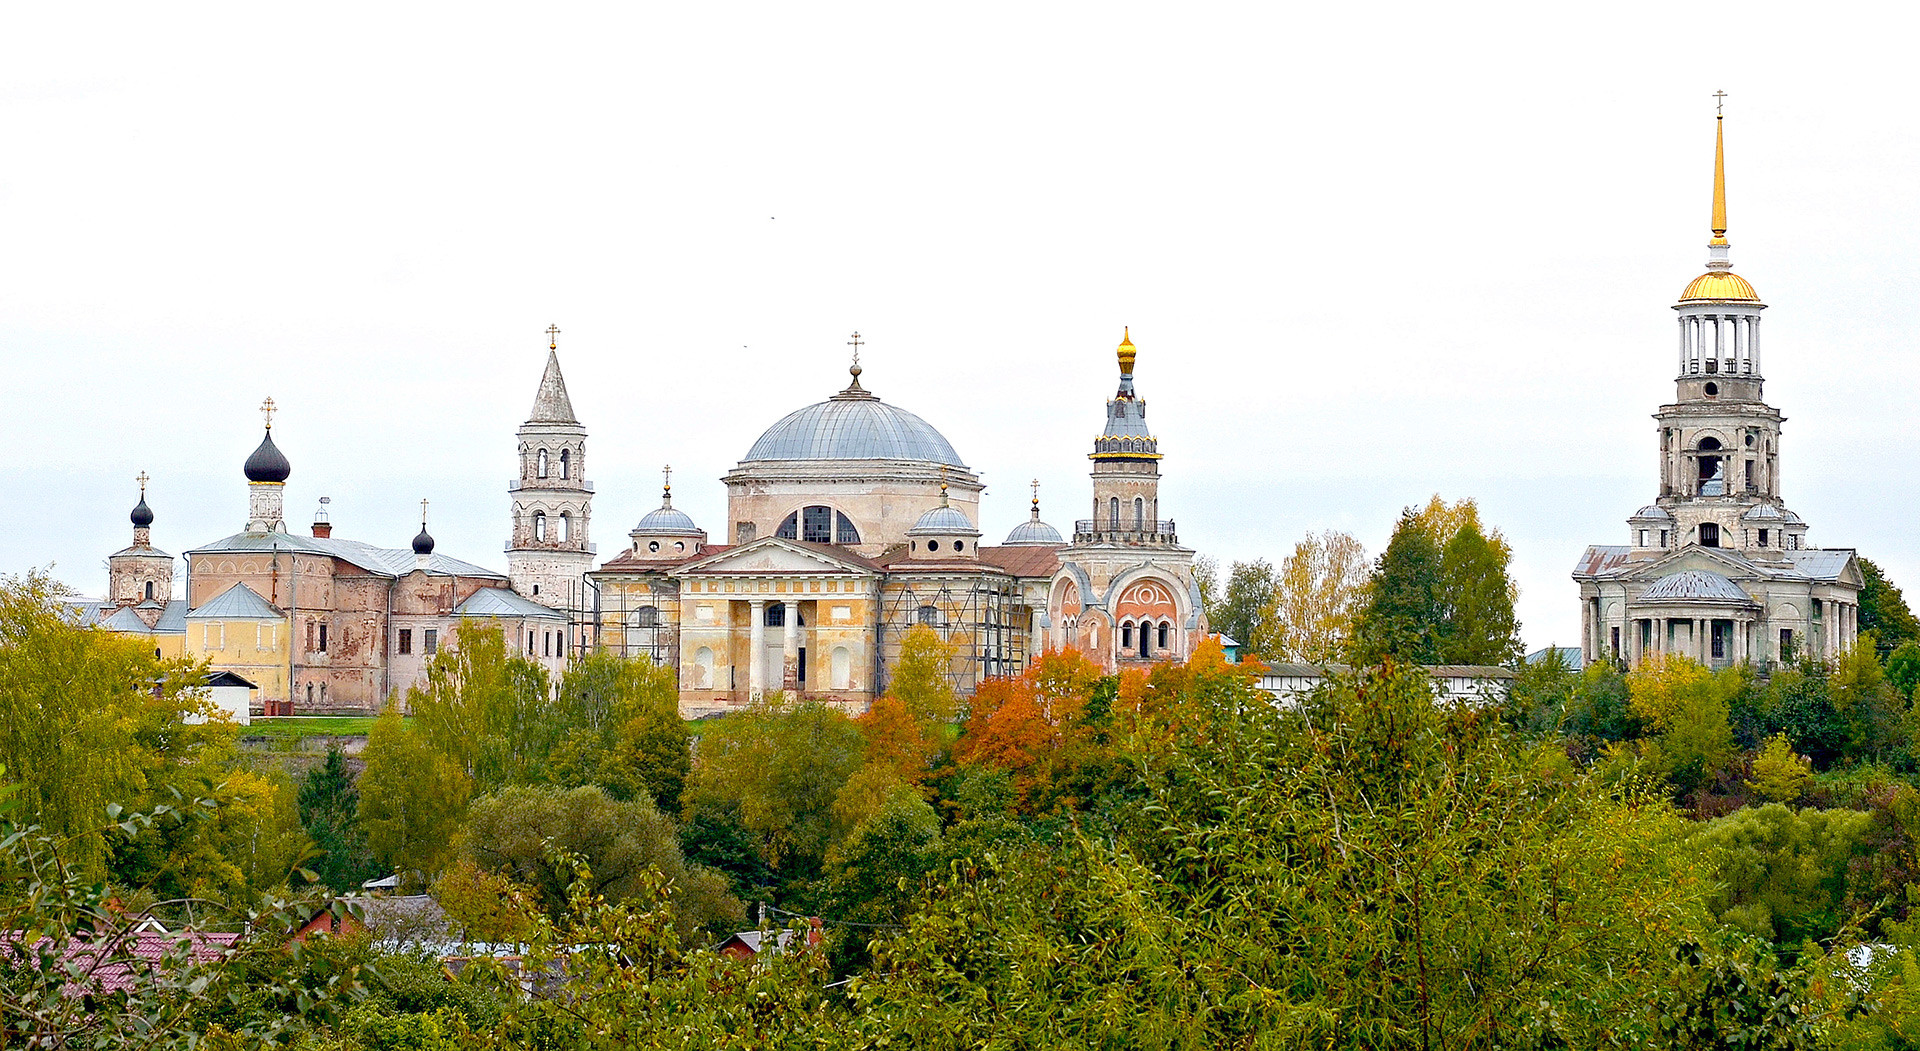 St. Boris and Gleb Monastery